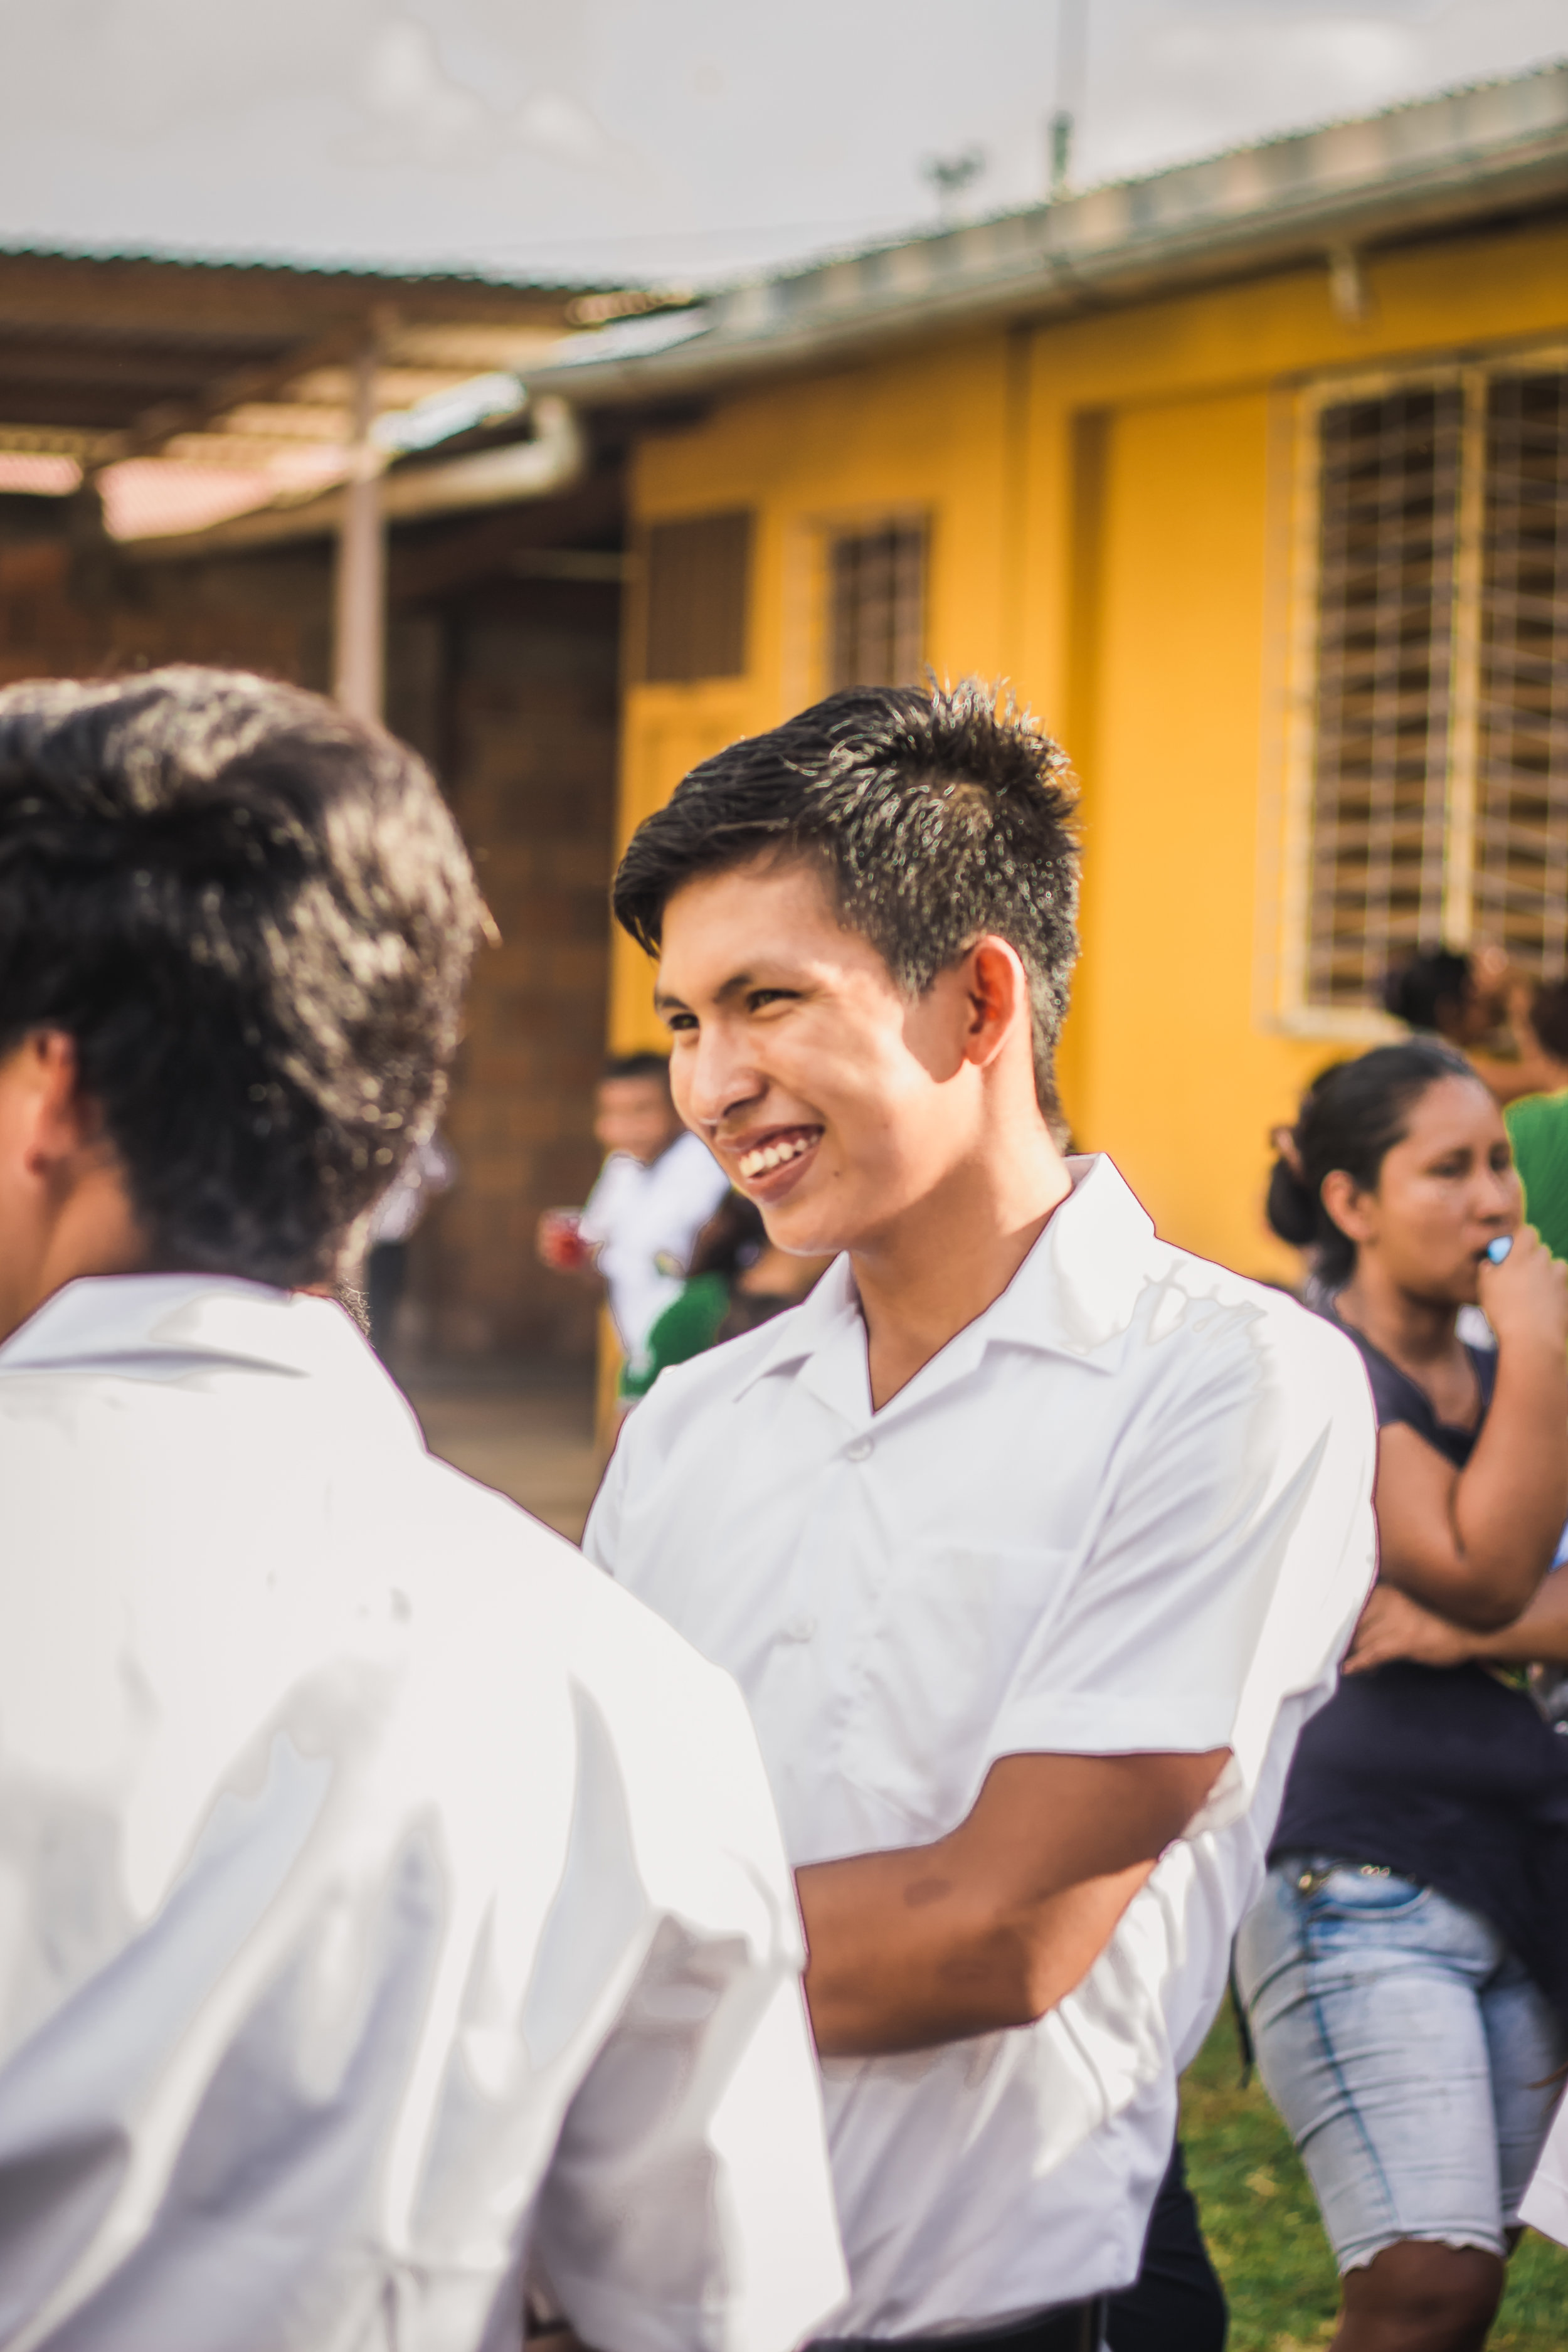 pucallpa-life-travel-photography-peru-pure-art-foundation-education-one-school-for-all